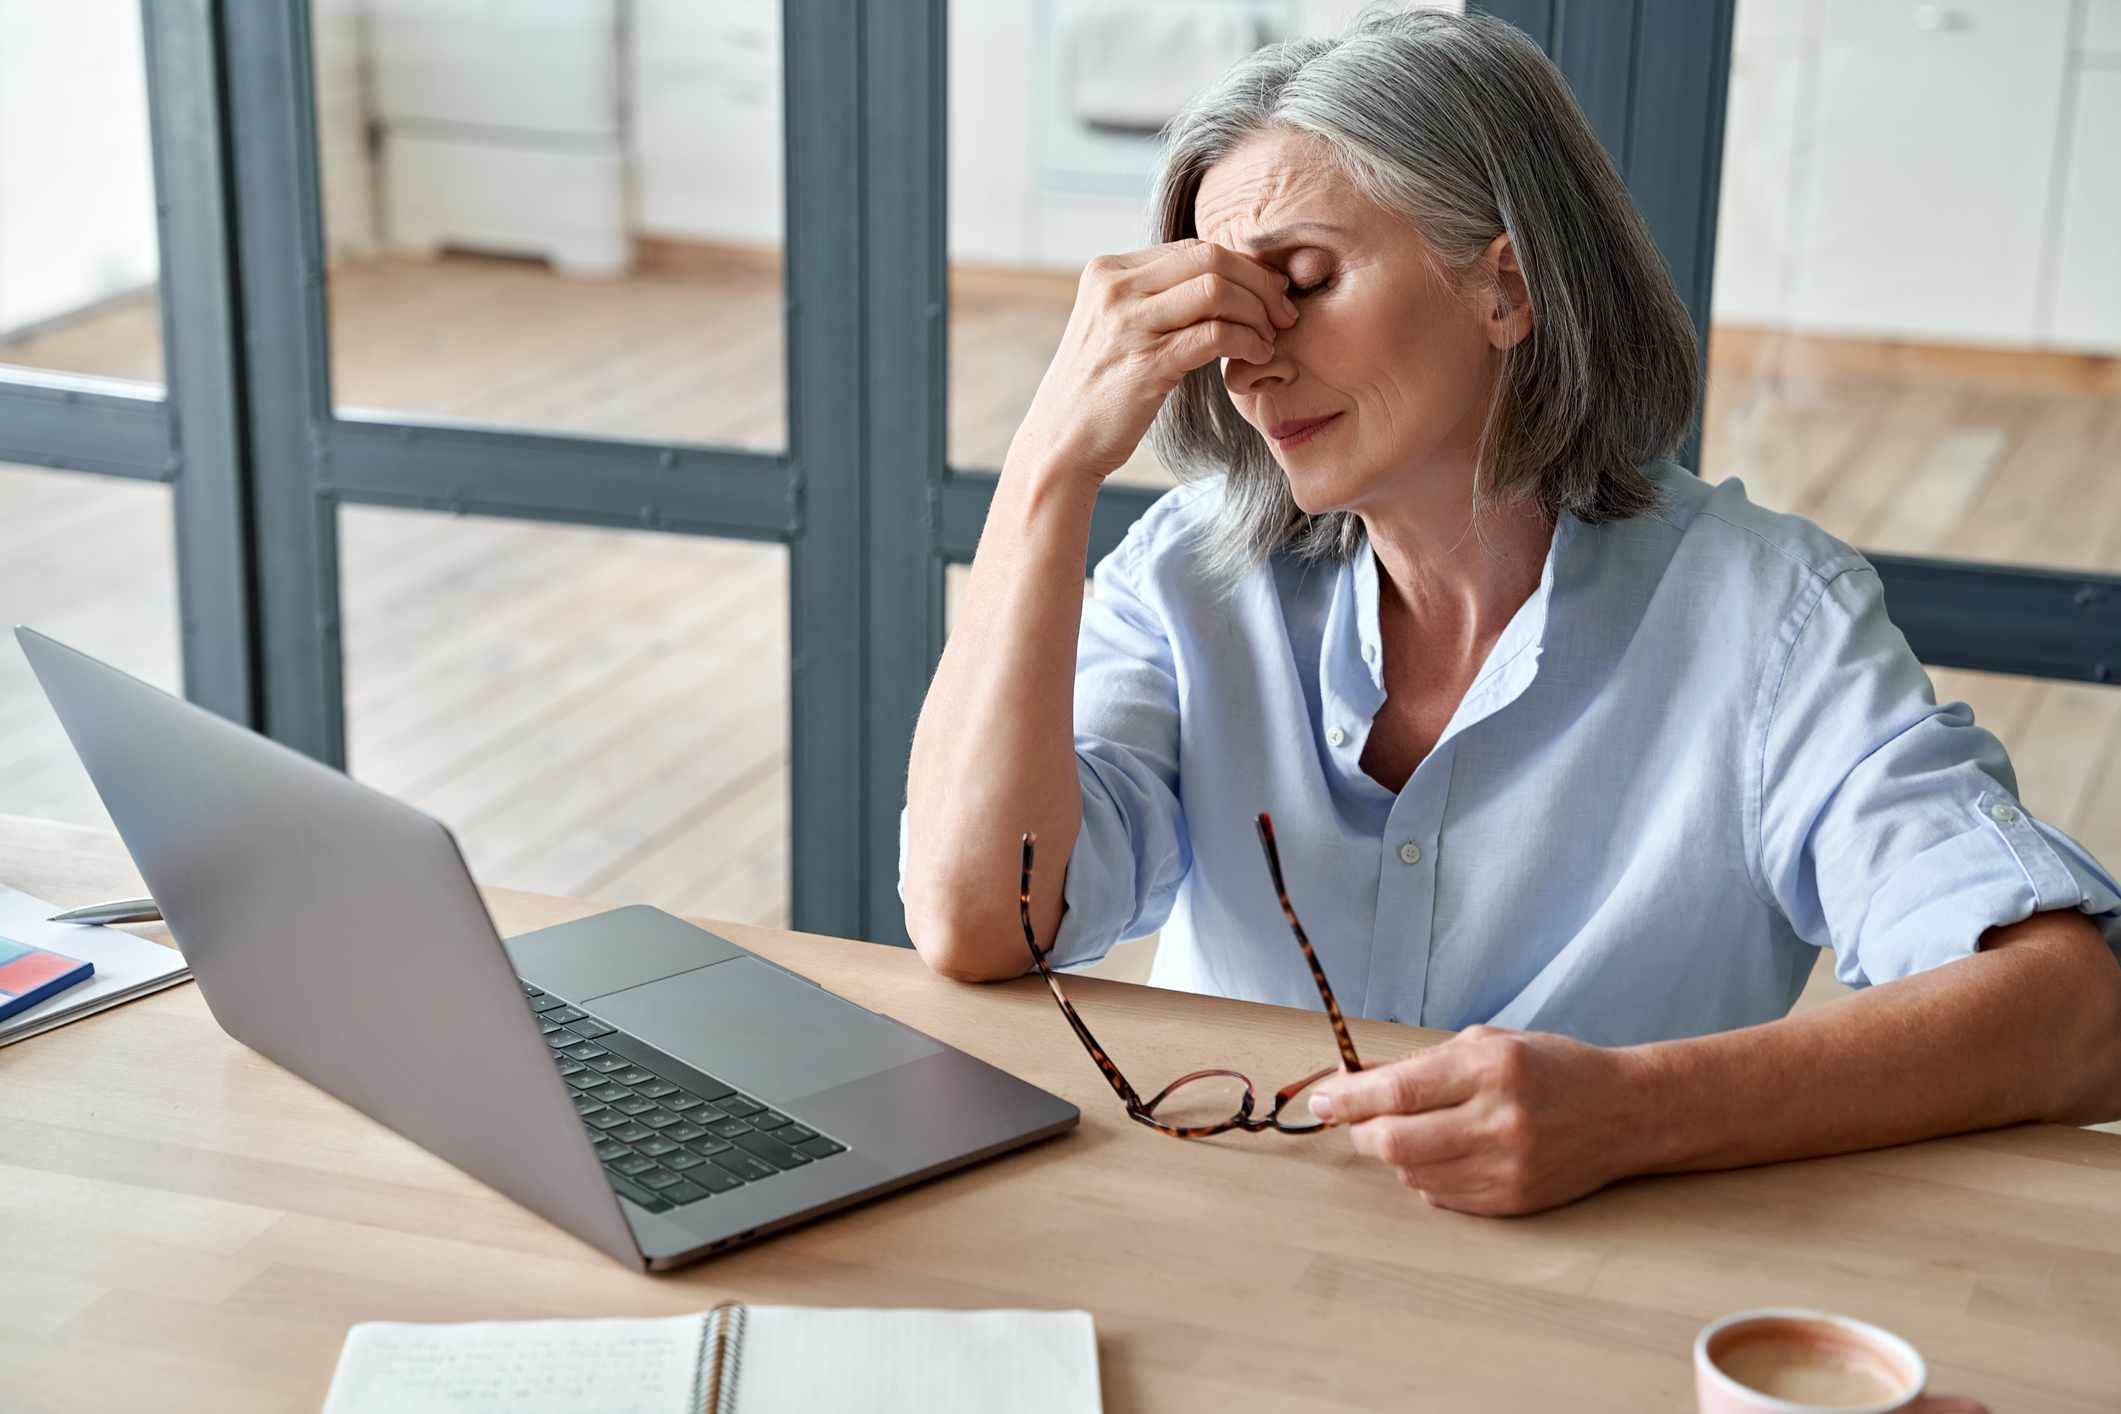 Mature woman with dry eyes using laptop